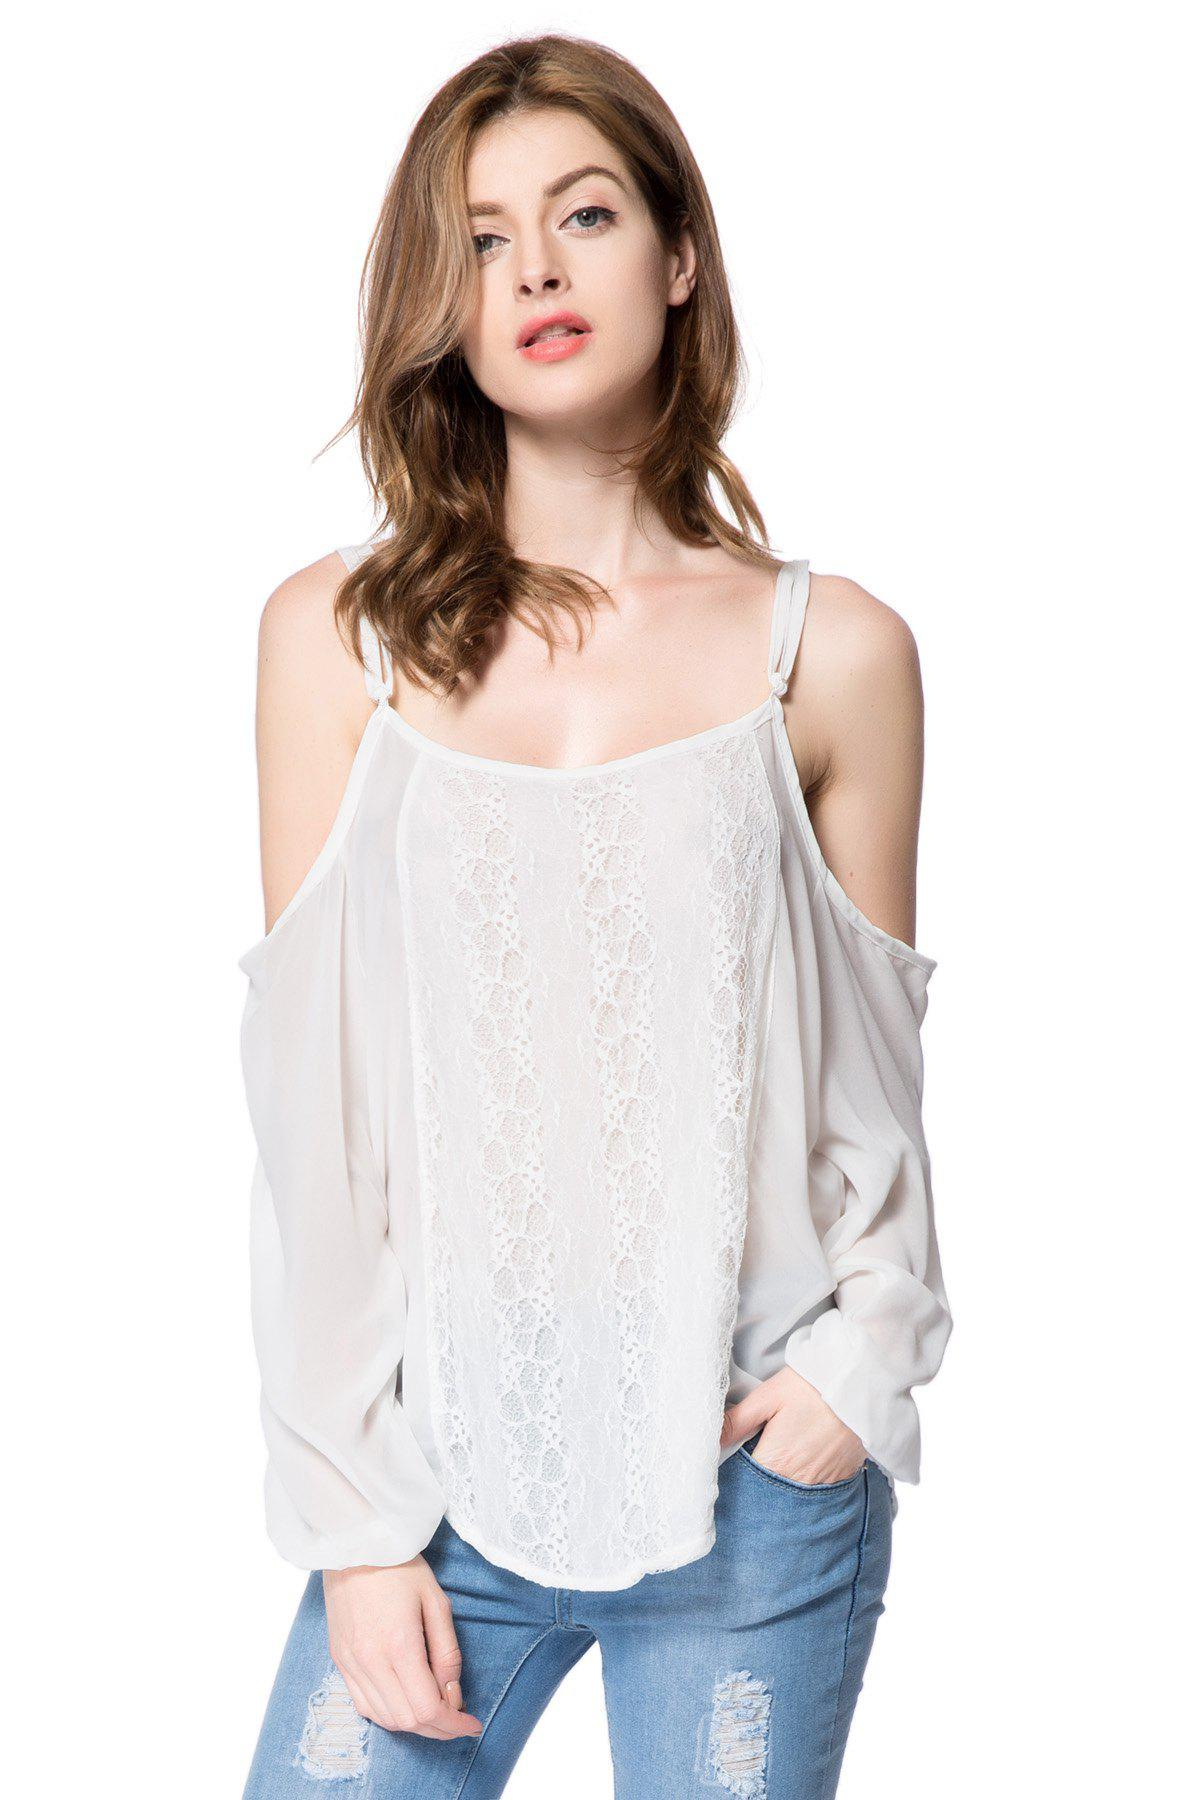 Spaghetti Strap Long Sleeve Lace Blouse For Women - WHITE M